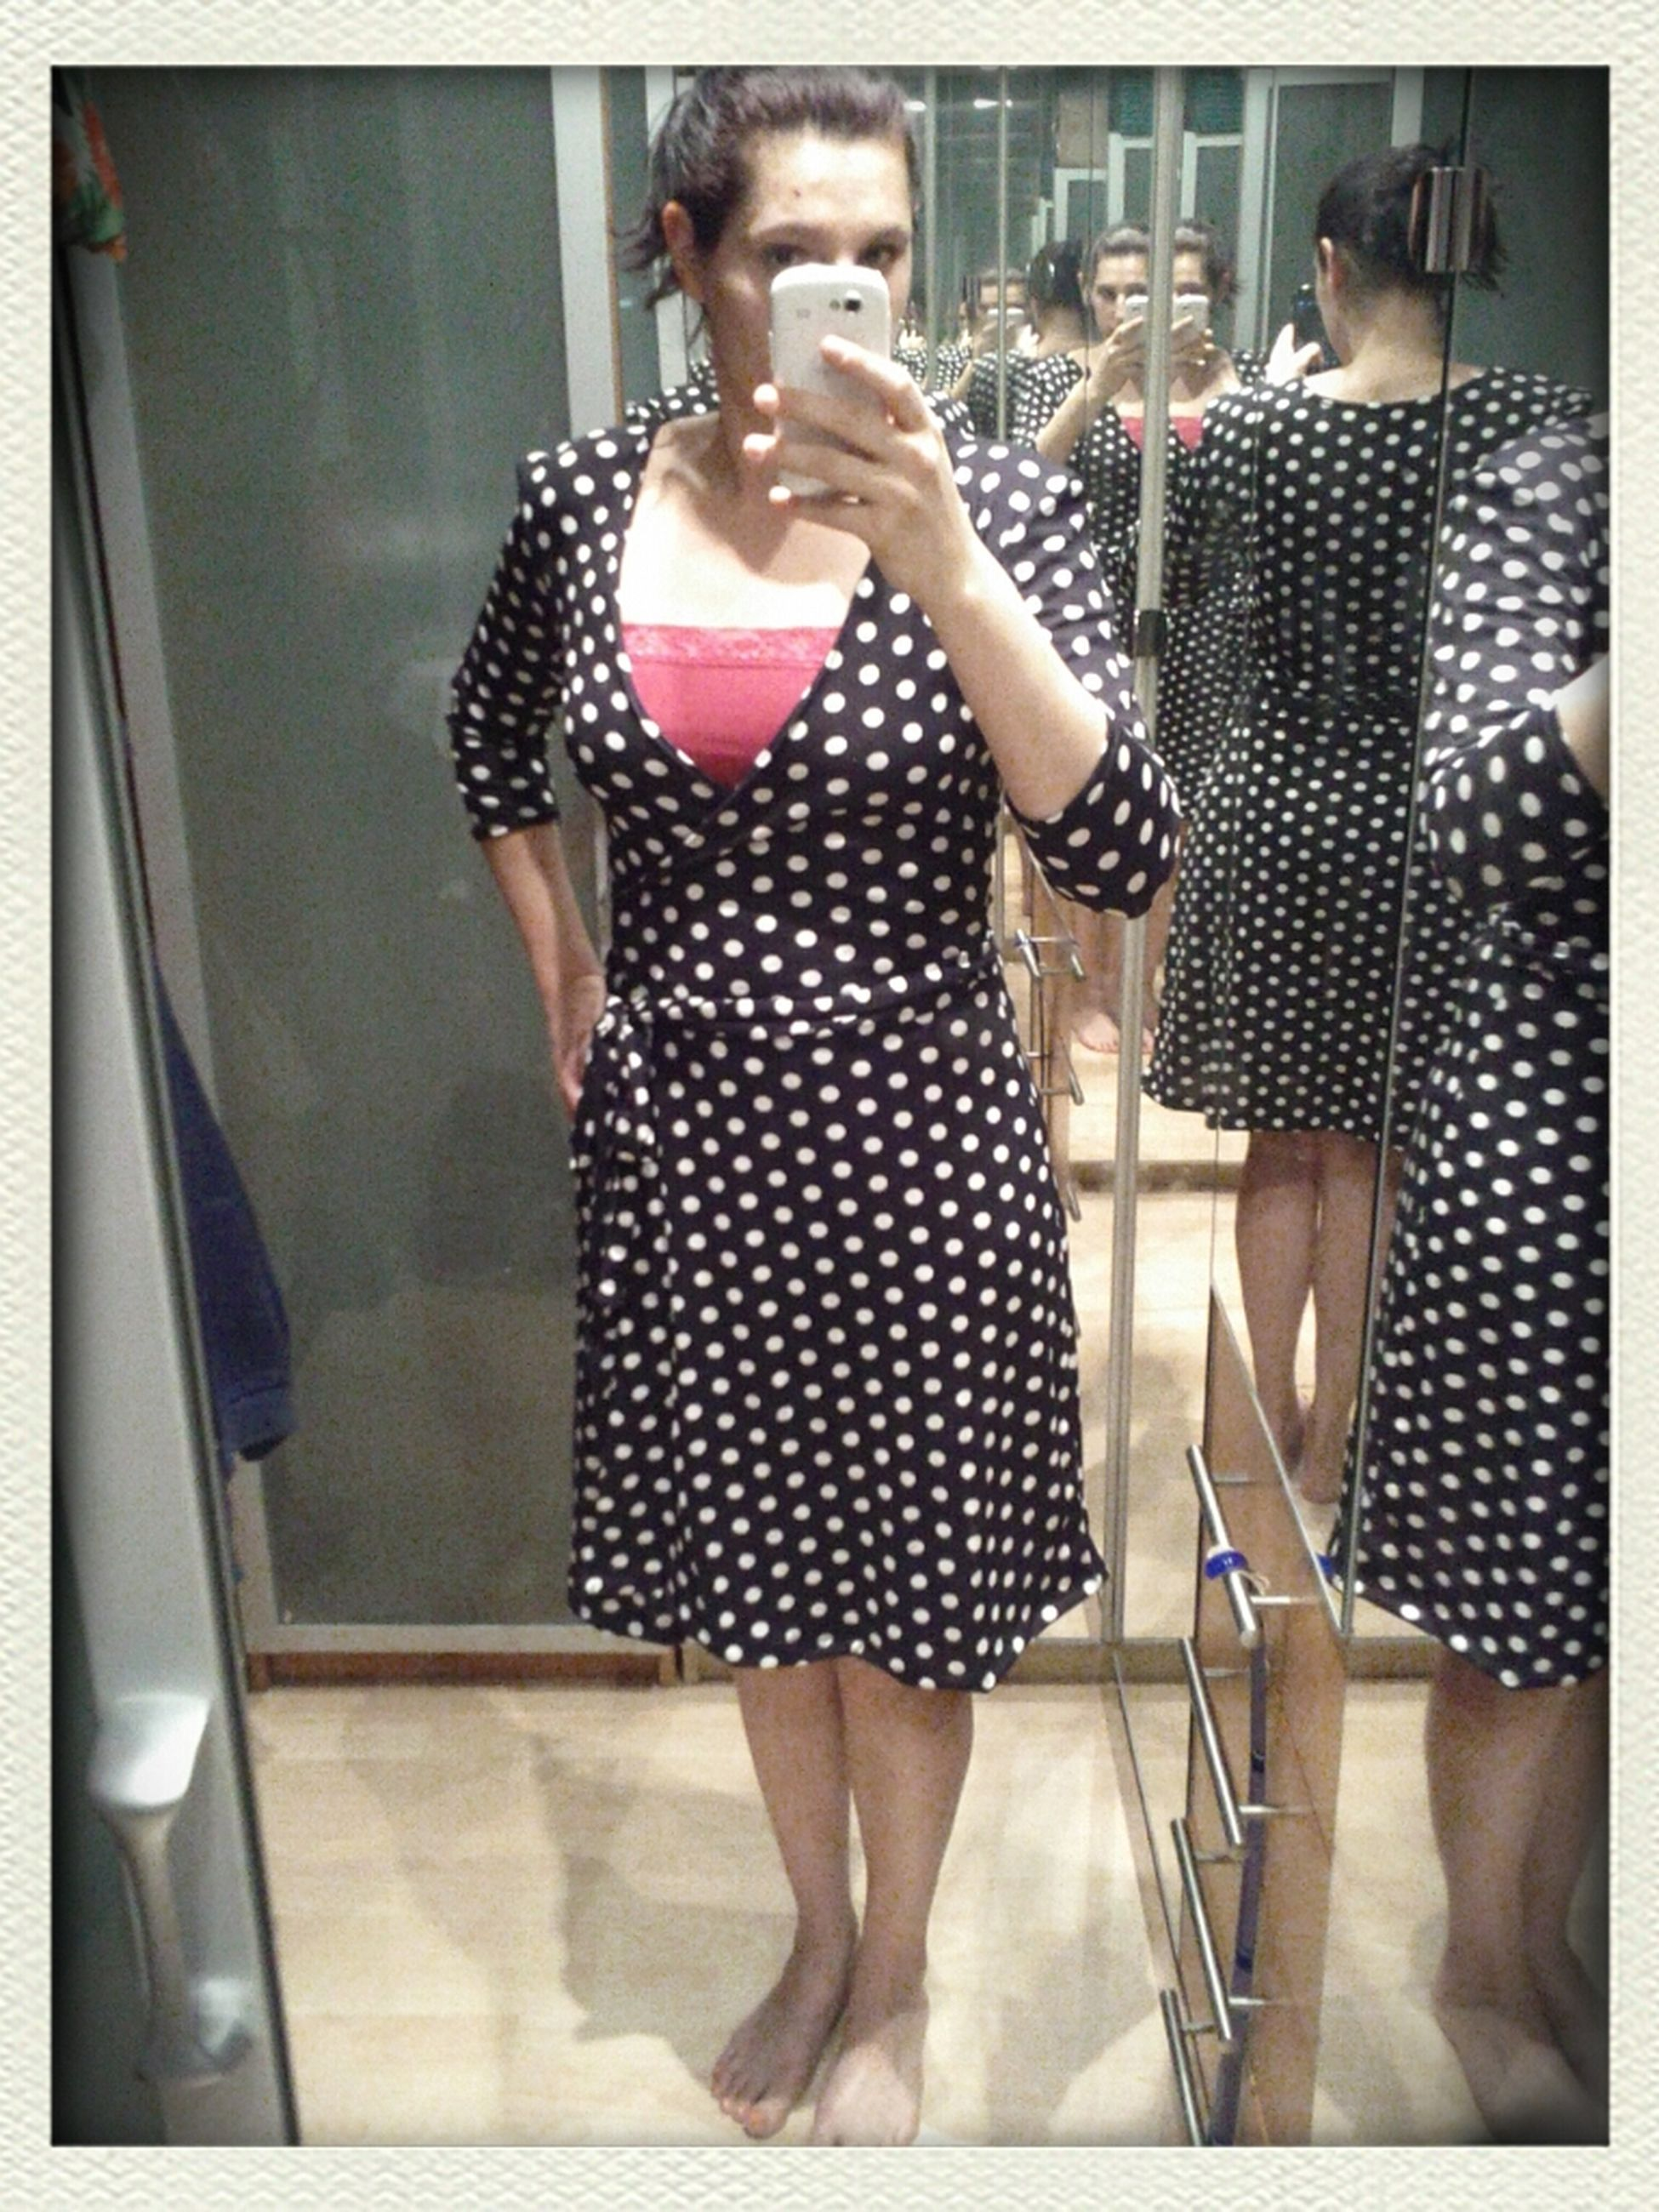 indoors, lifestyles, young adult, leisure activity, casual clothing, standing, transfer print, wireless technology, young women, person, front view, technology, smart phone, full length, three quarter length, holding, mirror, communication